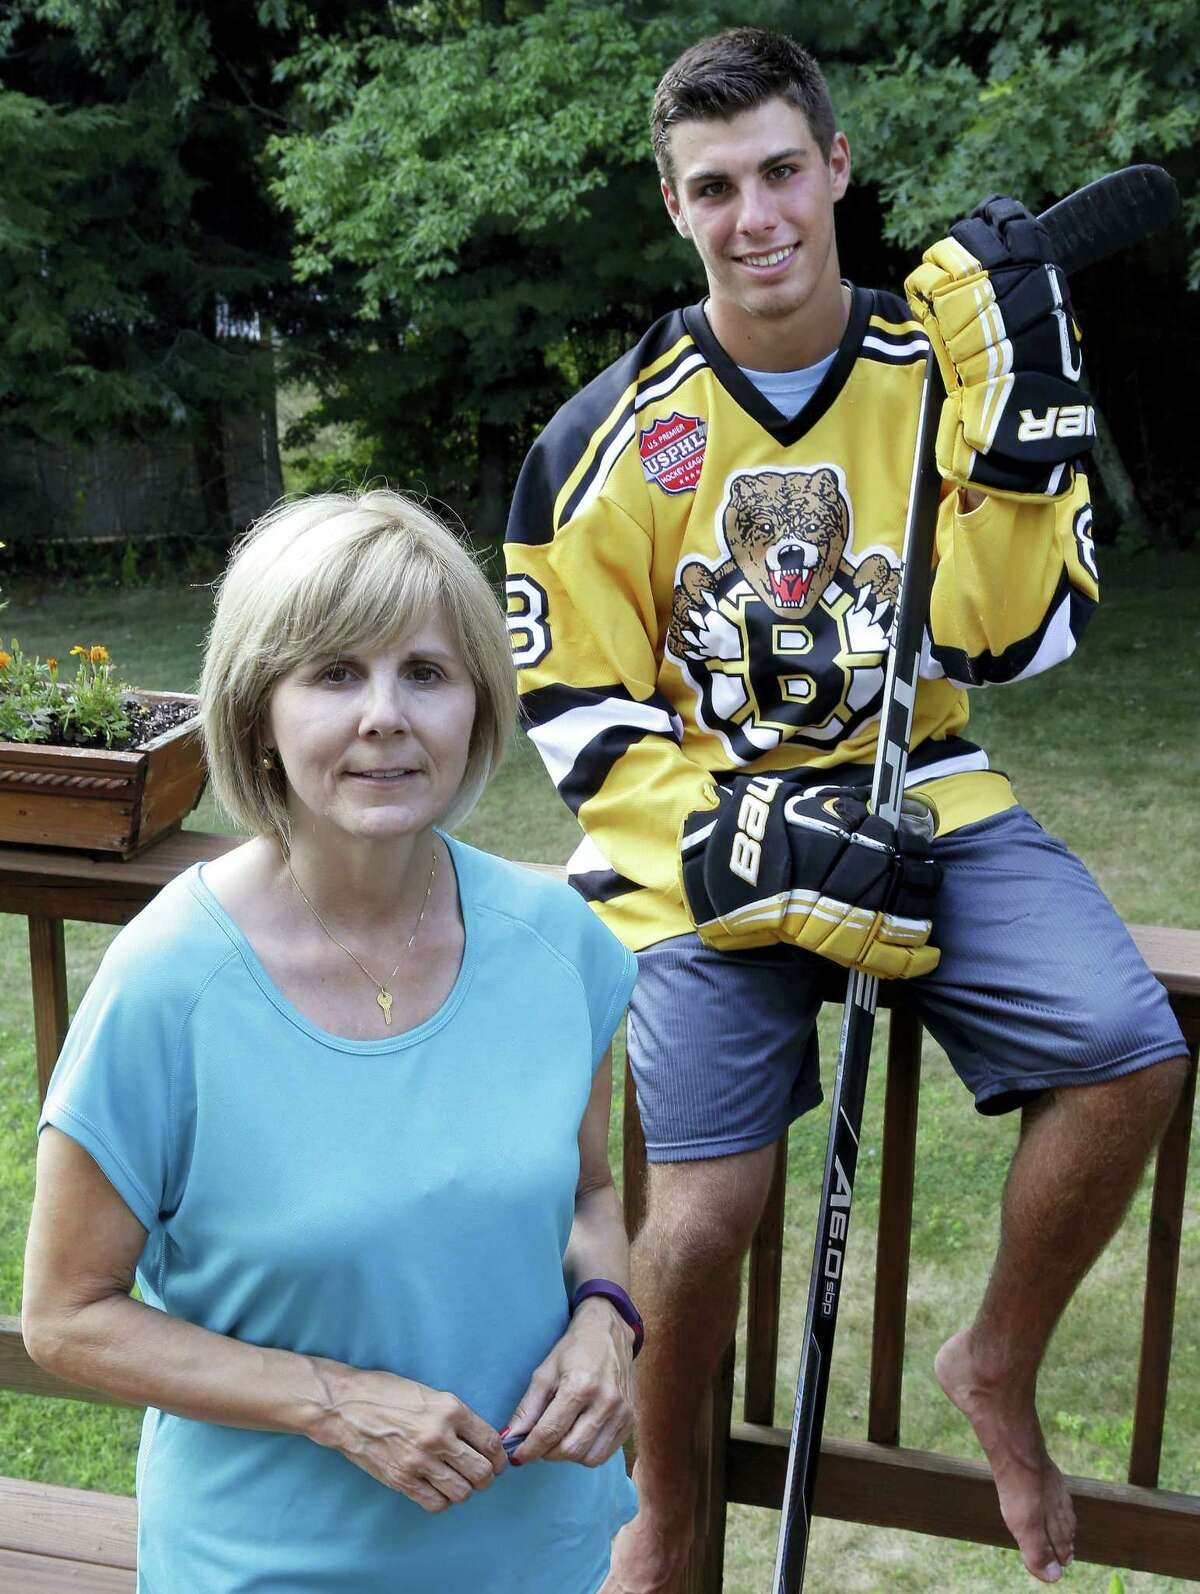 Debbie Amorelli poses with her son, Chris, 17, at their home in Upton, Mass. Debbie and her husband spend about $10,000 a year to pay for Chris to play hockey. They are able to pay for it thanks to an inheritance from his grandfather but keep telling him that this is money that could be going toward college.